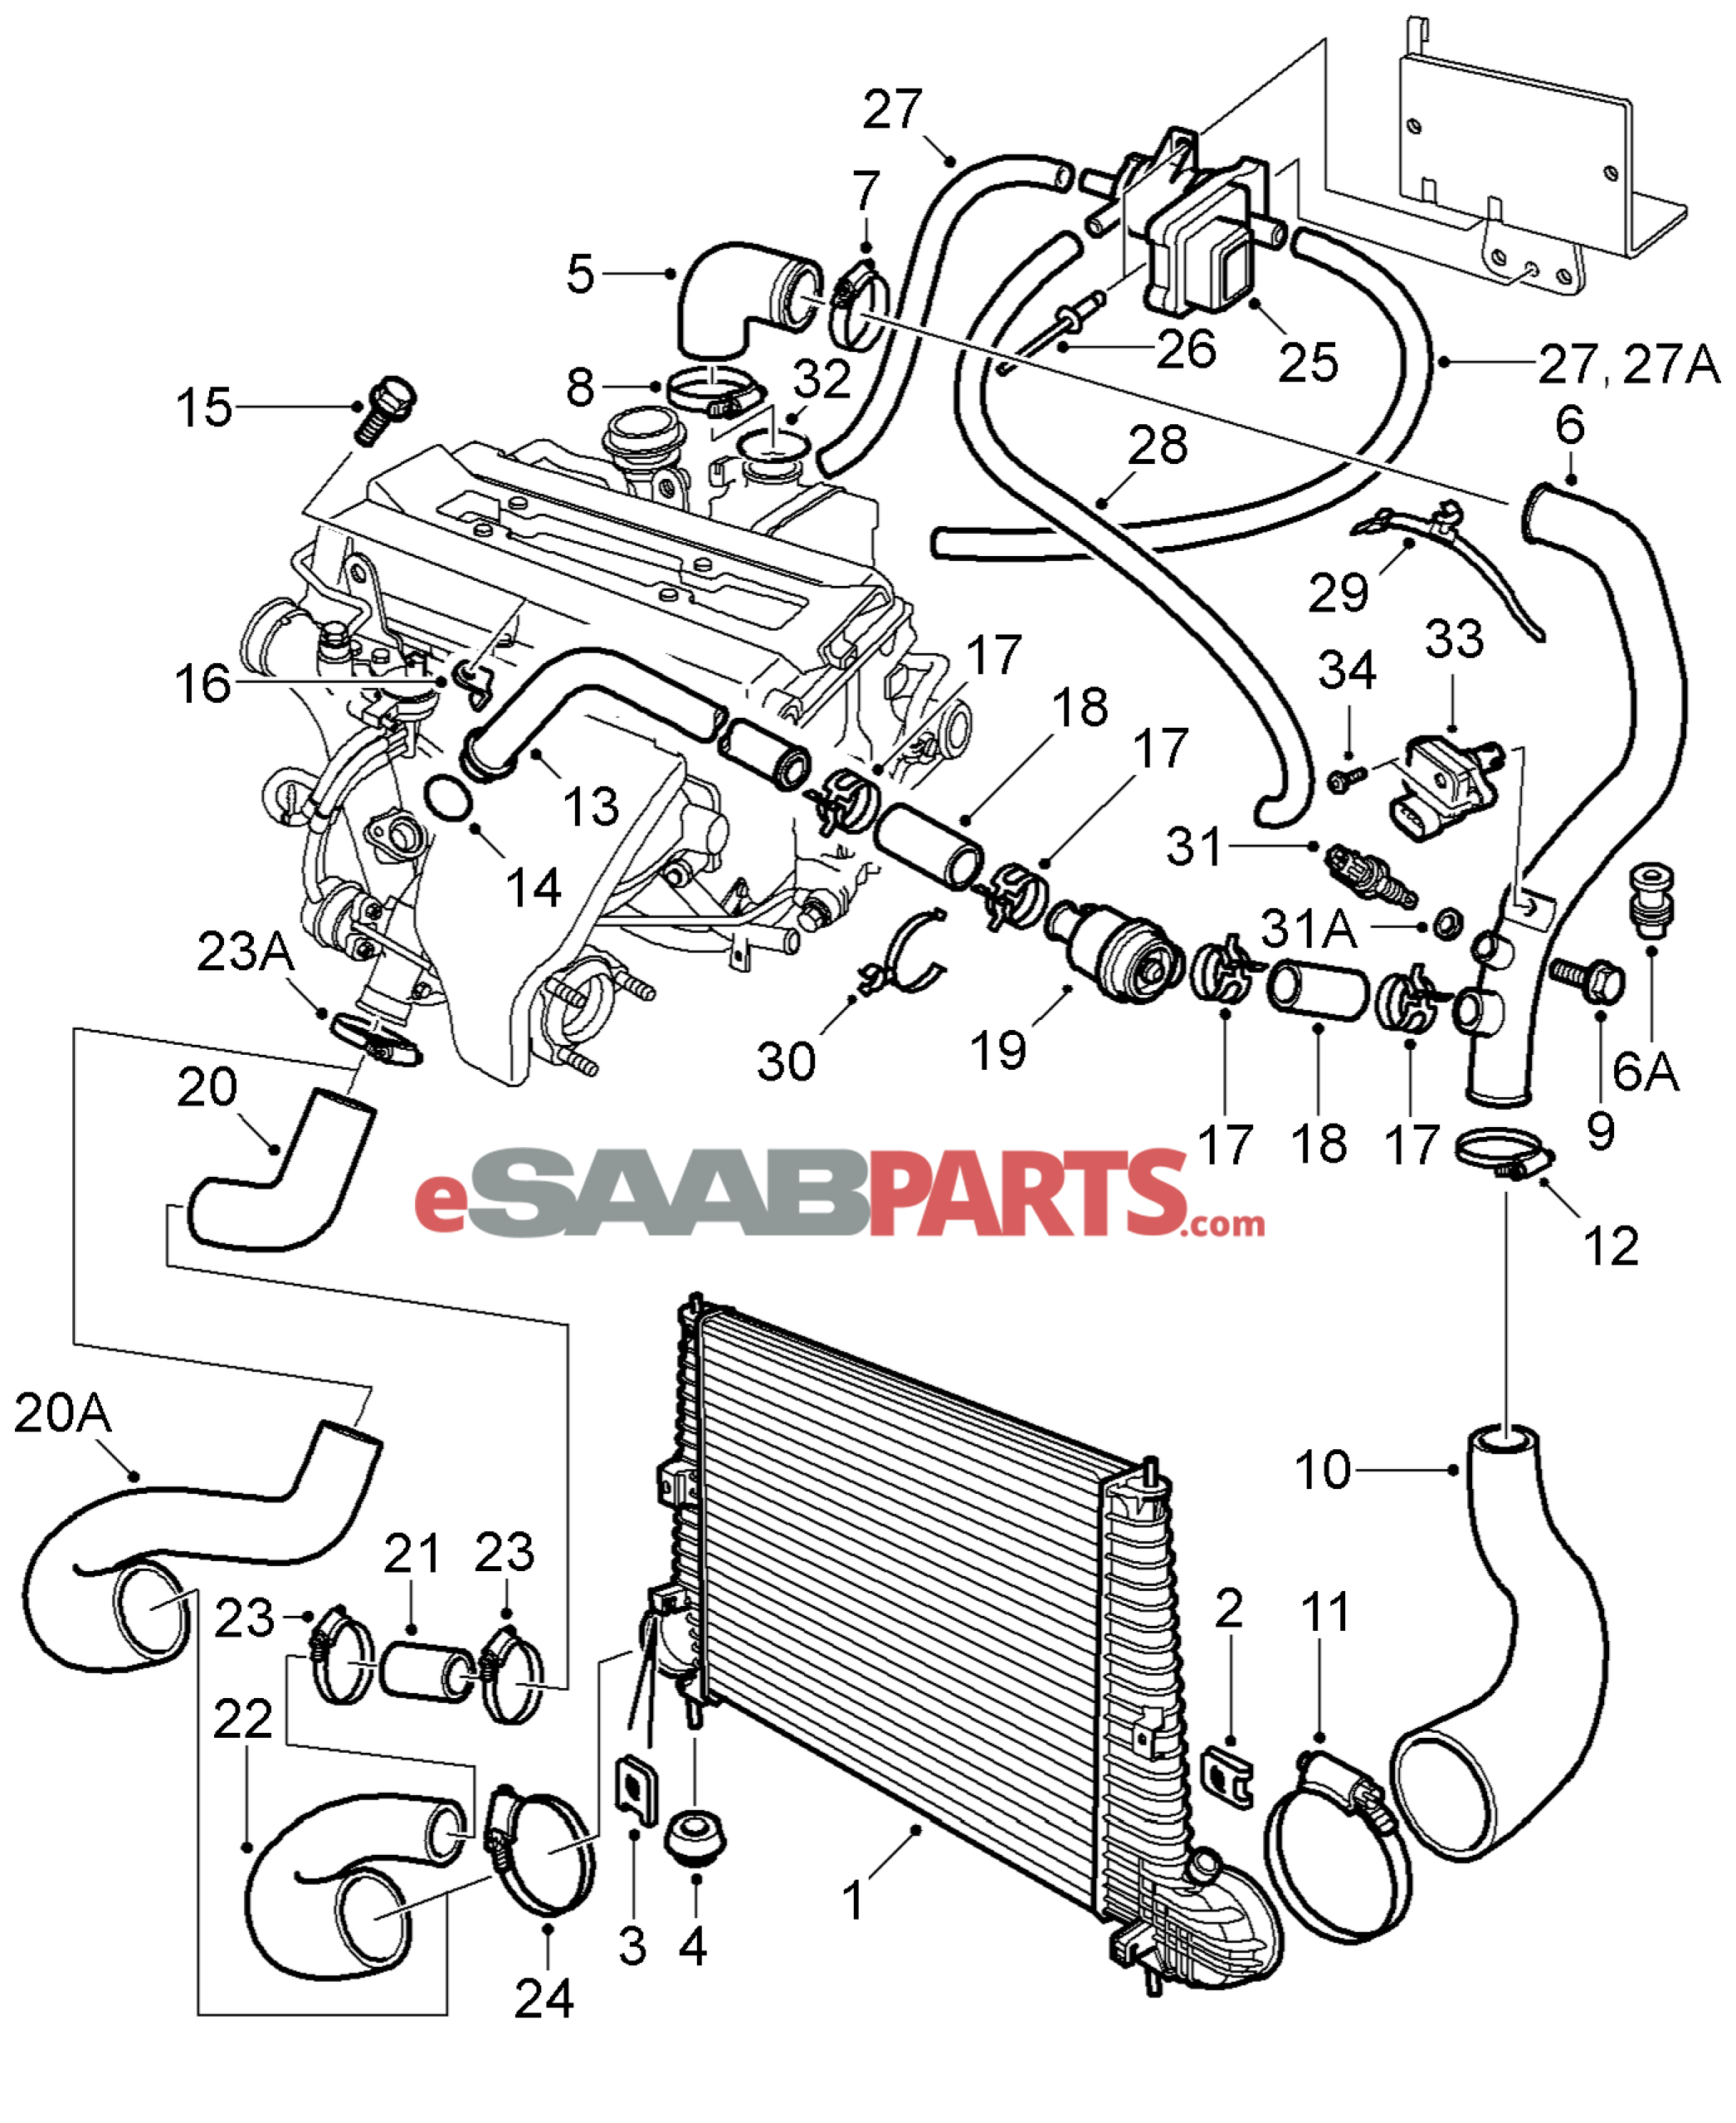 2003 saab engine wiring online circuit wiring diagram u2022 rh electrobuddha co uk